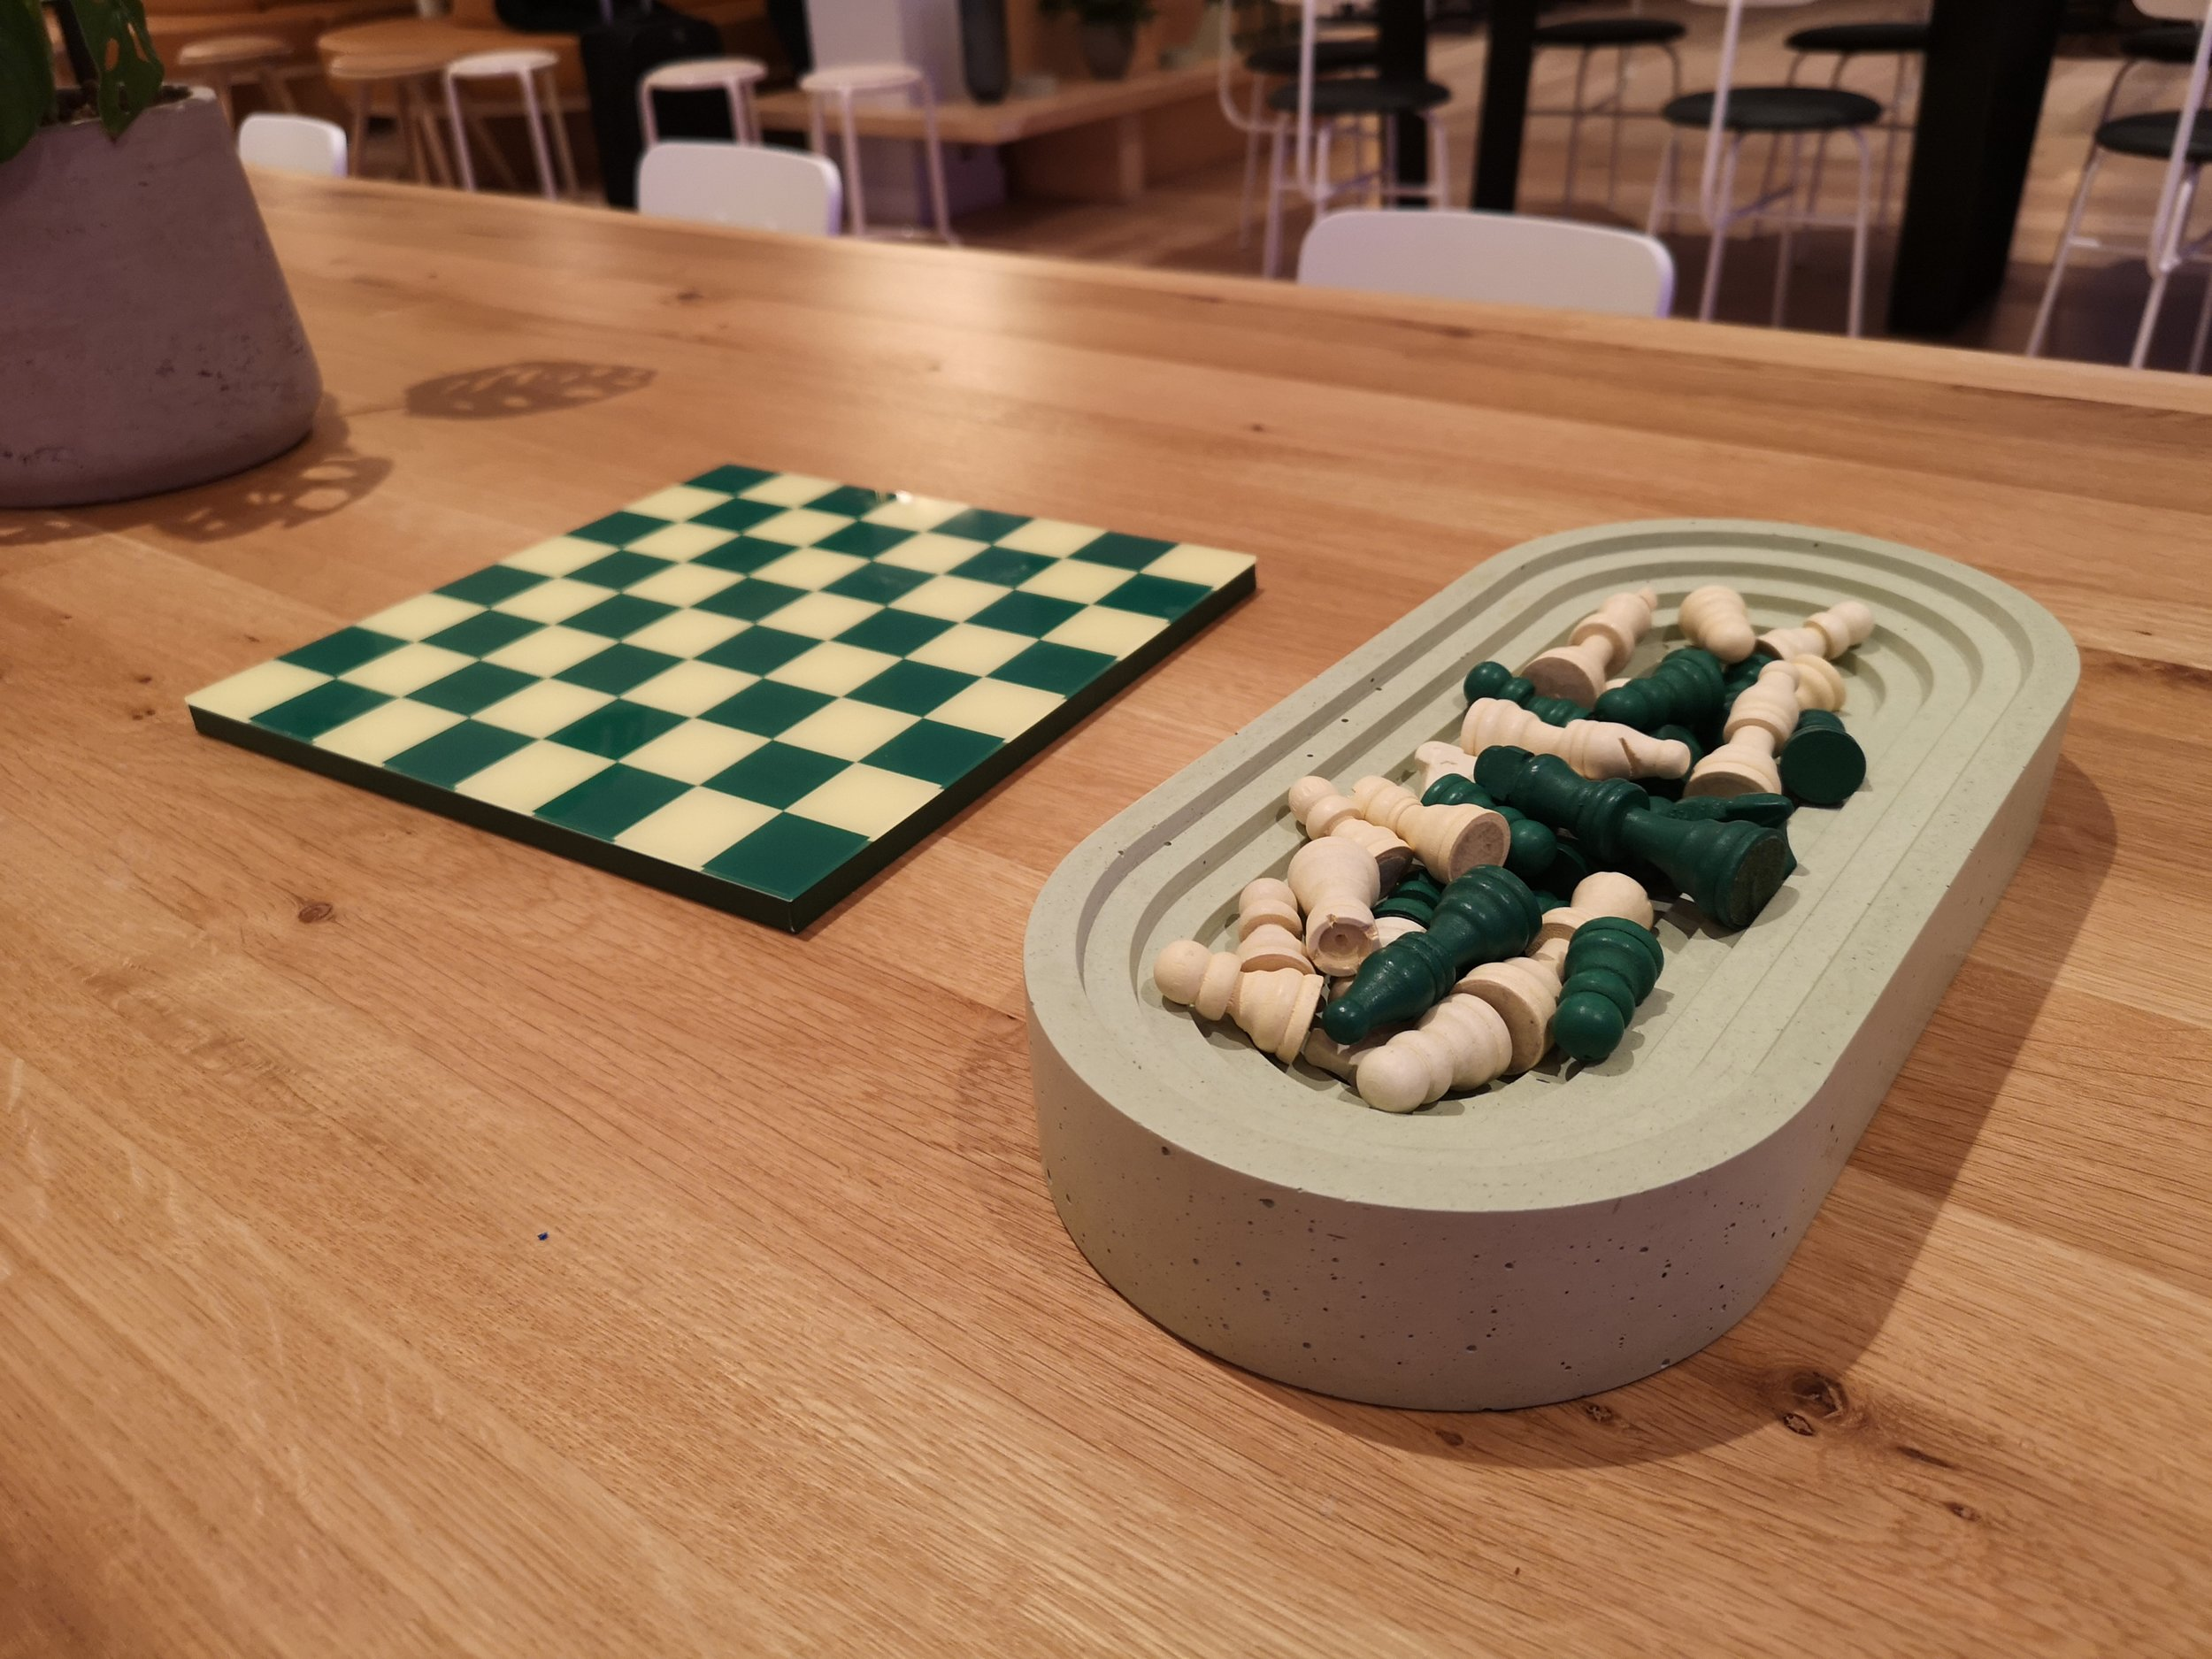 Chess game available in the common area of WeWork Aviation House, London.